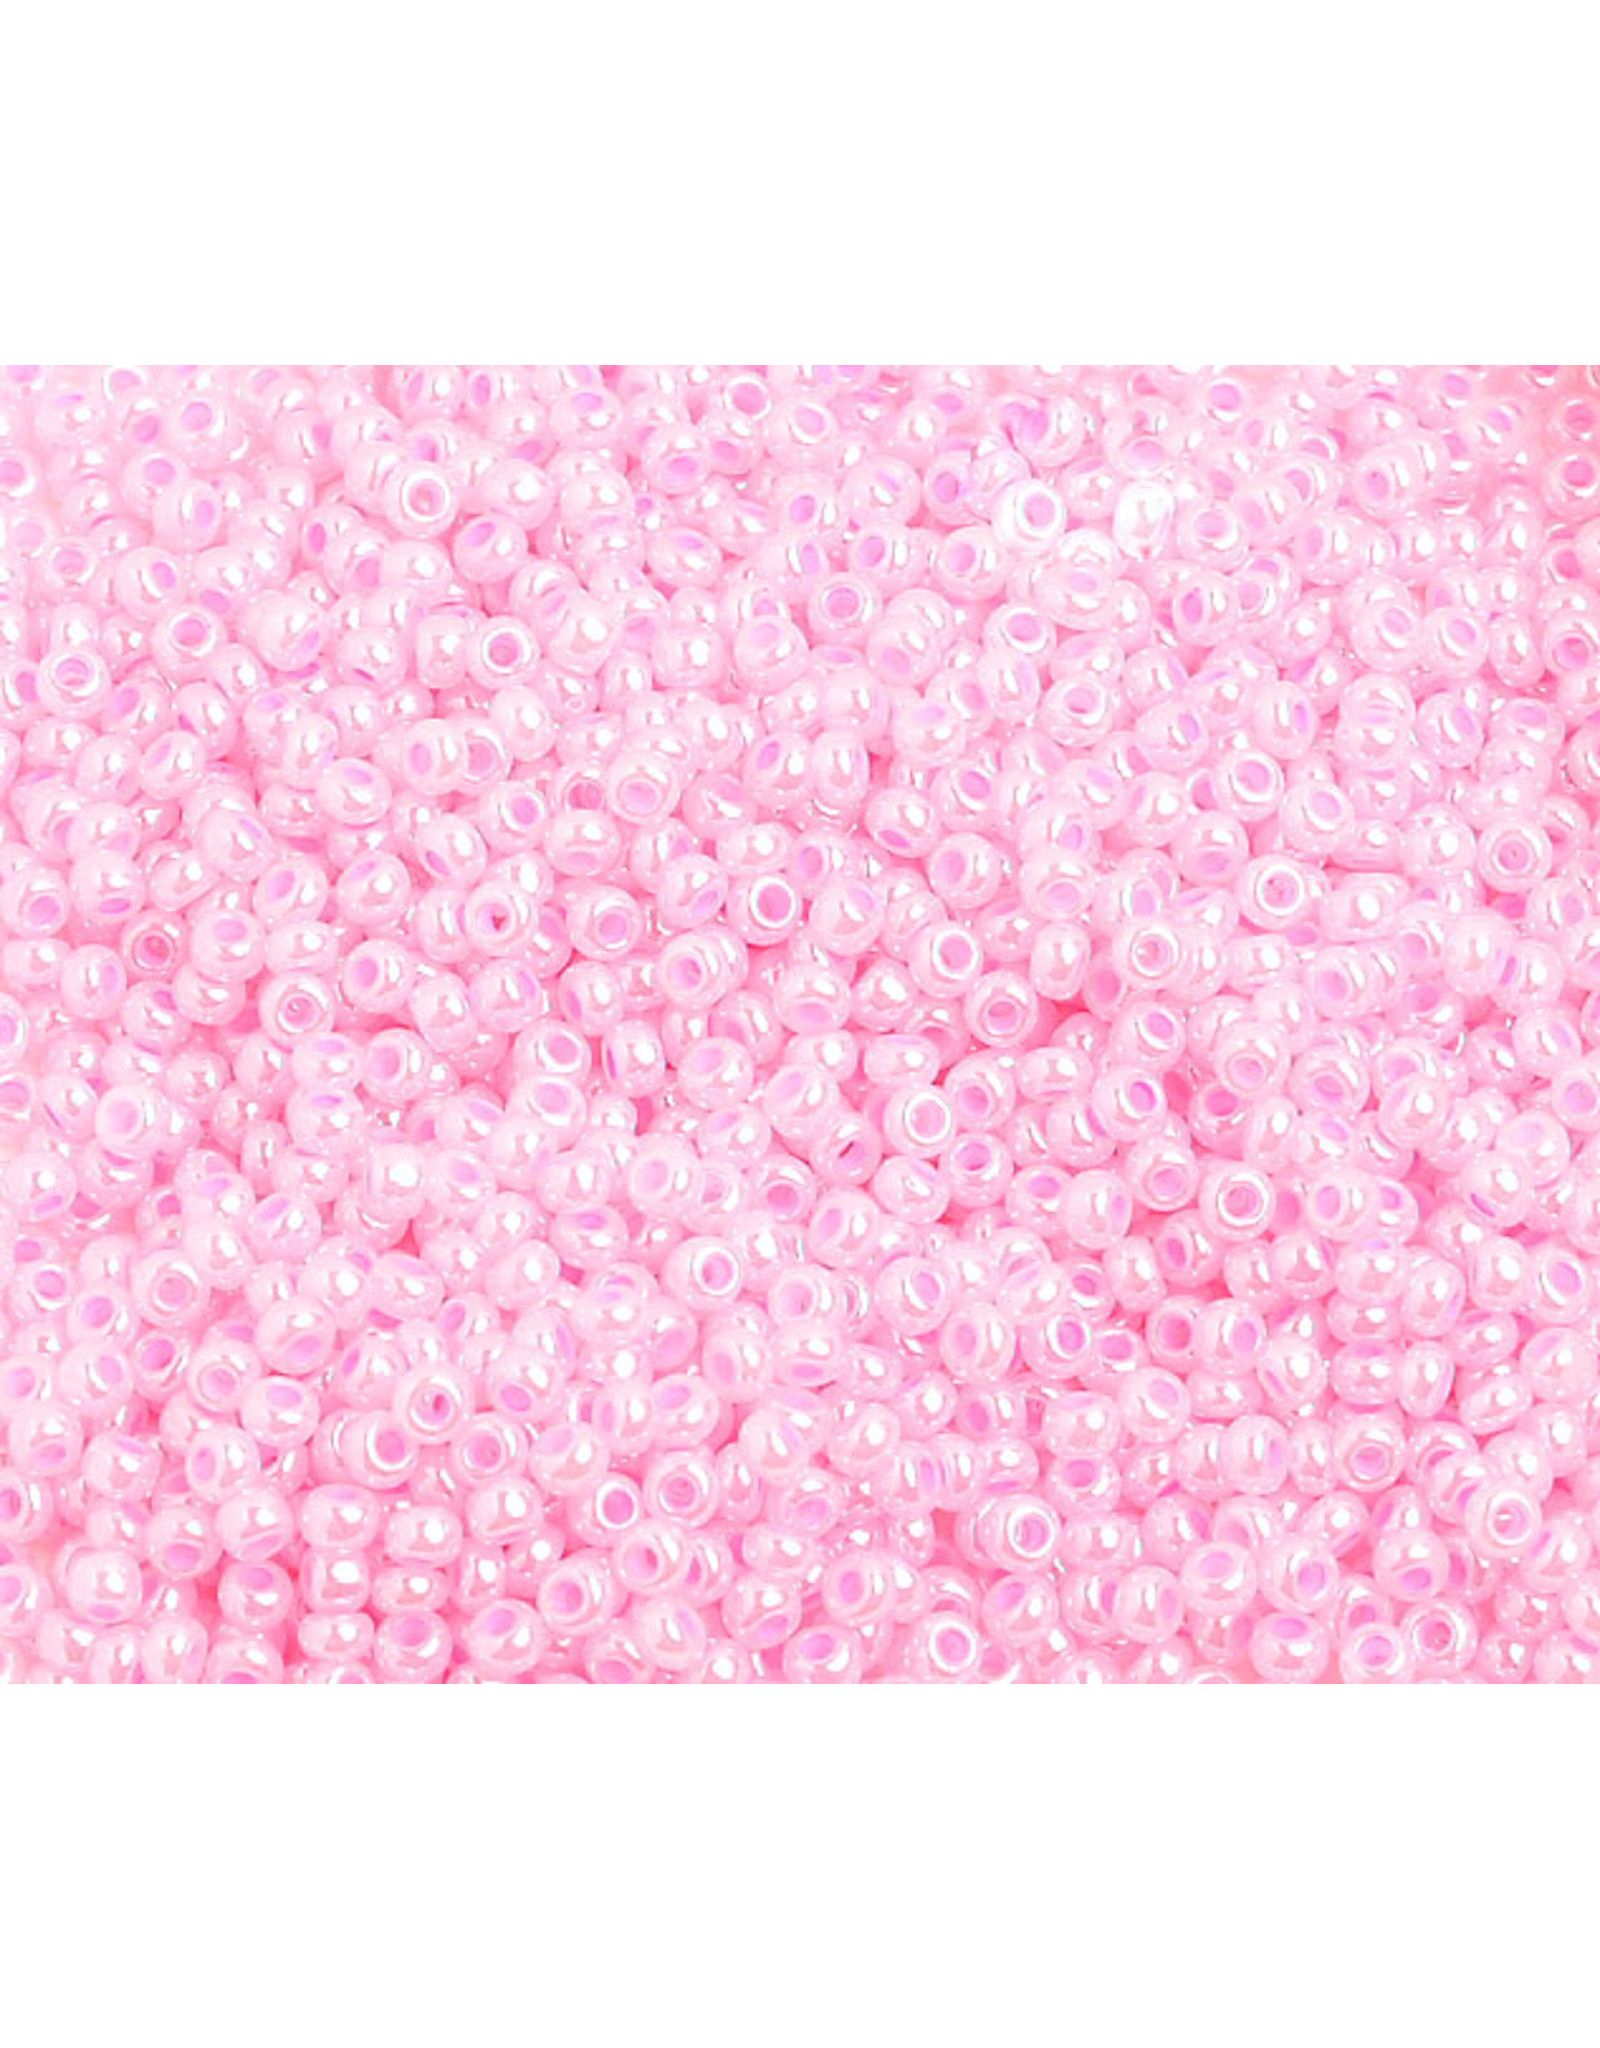 Czech 1429 10   Seed 20g Pink Rose Pearl Dyed